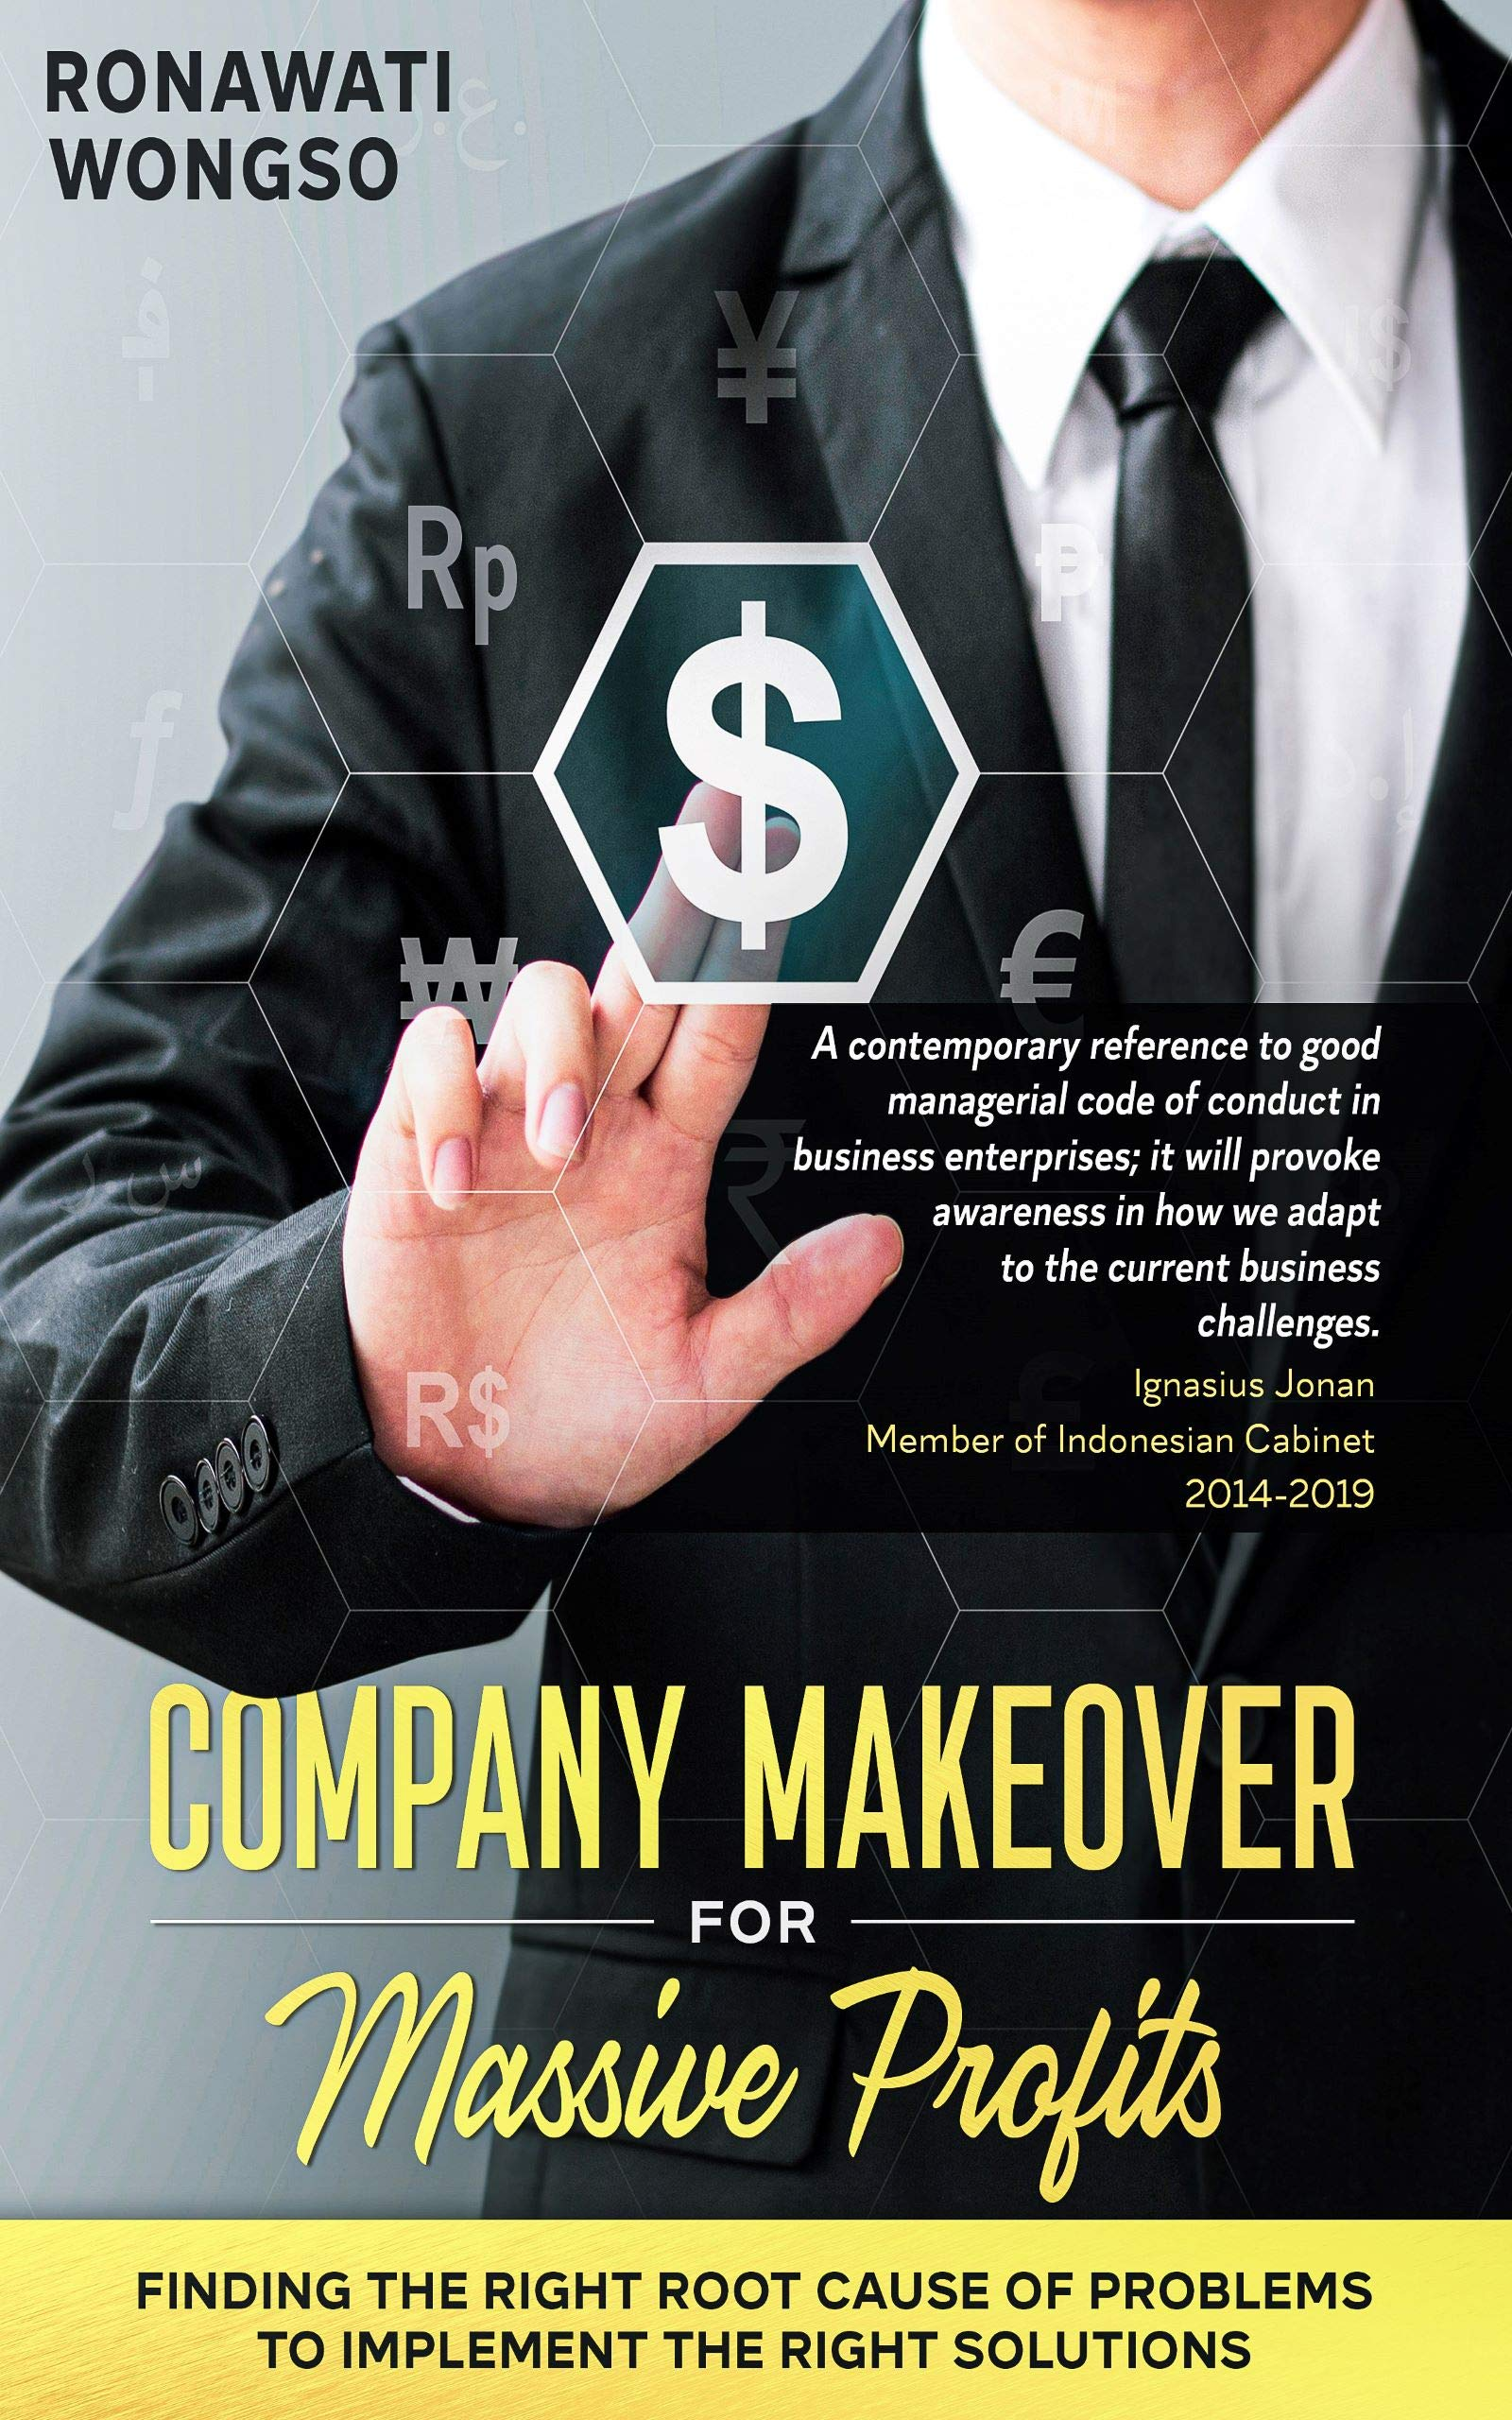 Company Makeover for Massive Profits: Finding the Right Root Cause of Problems to Implement the Right Solutions